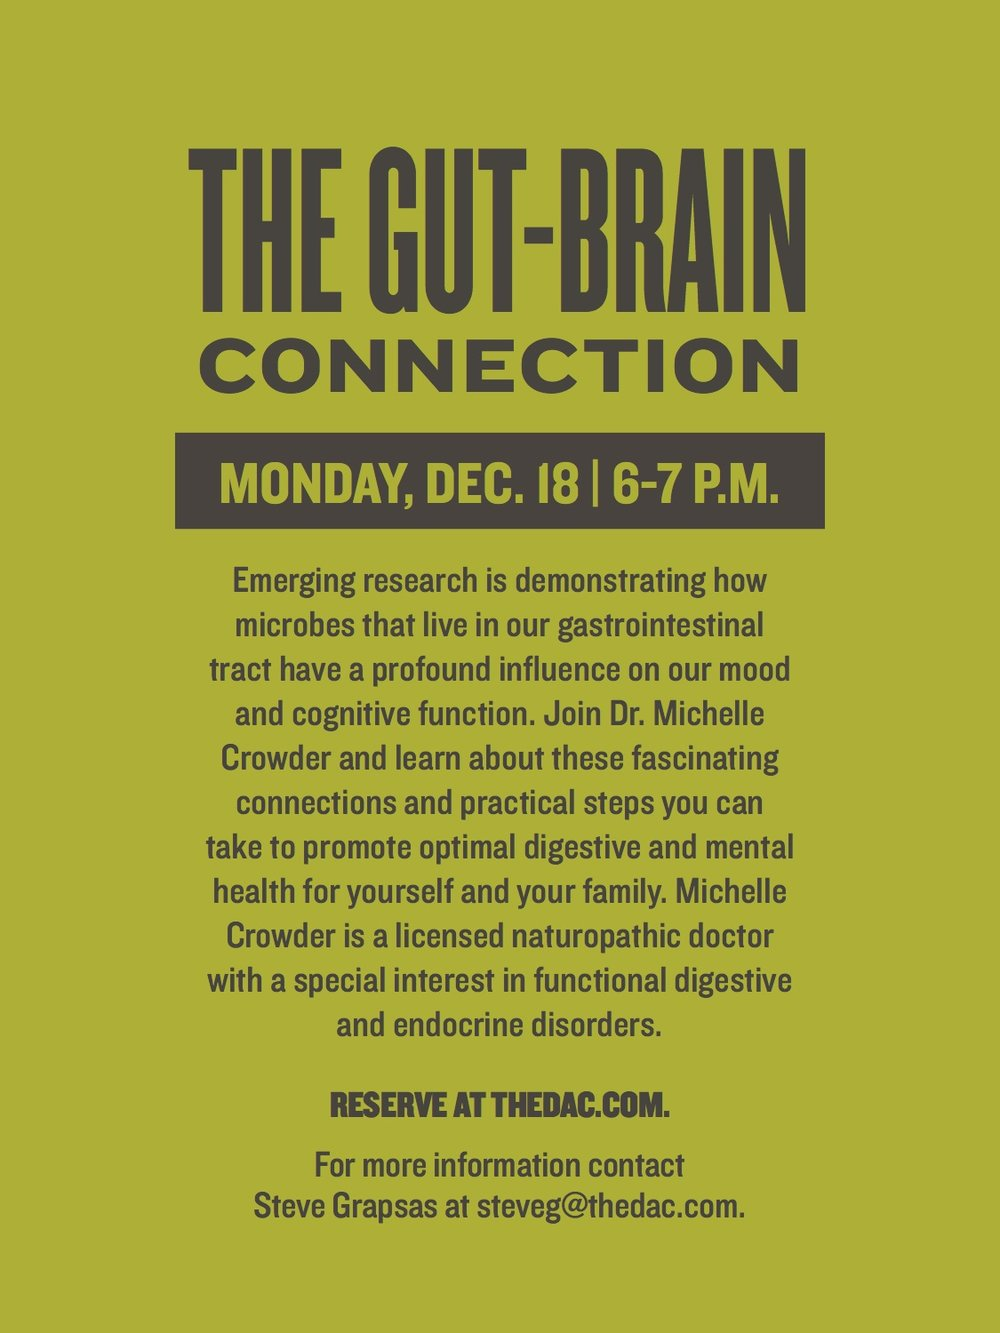 Gut Brain 12.18.17 Flyer.jpg